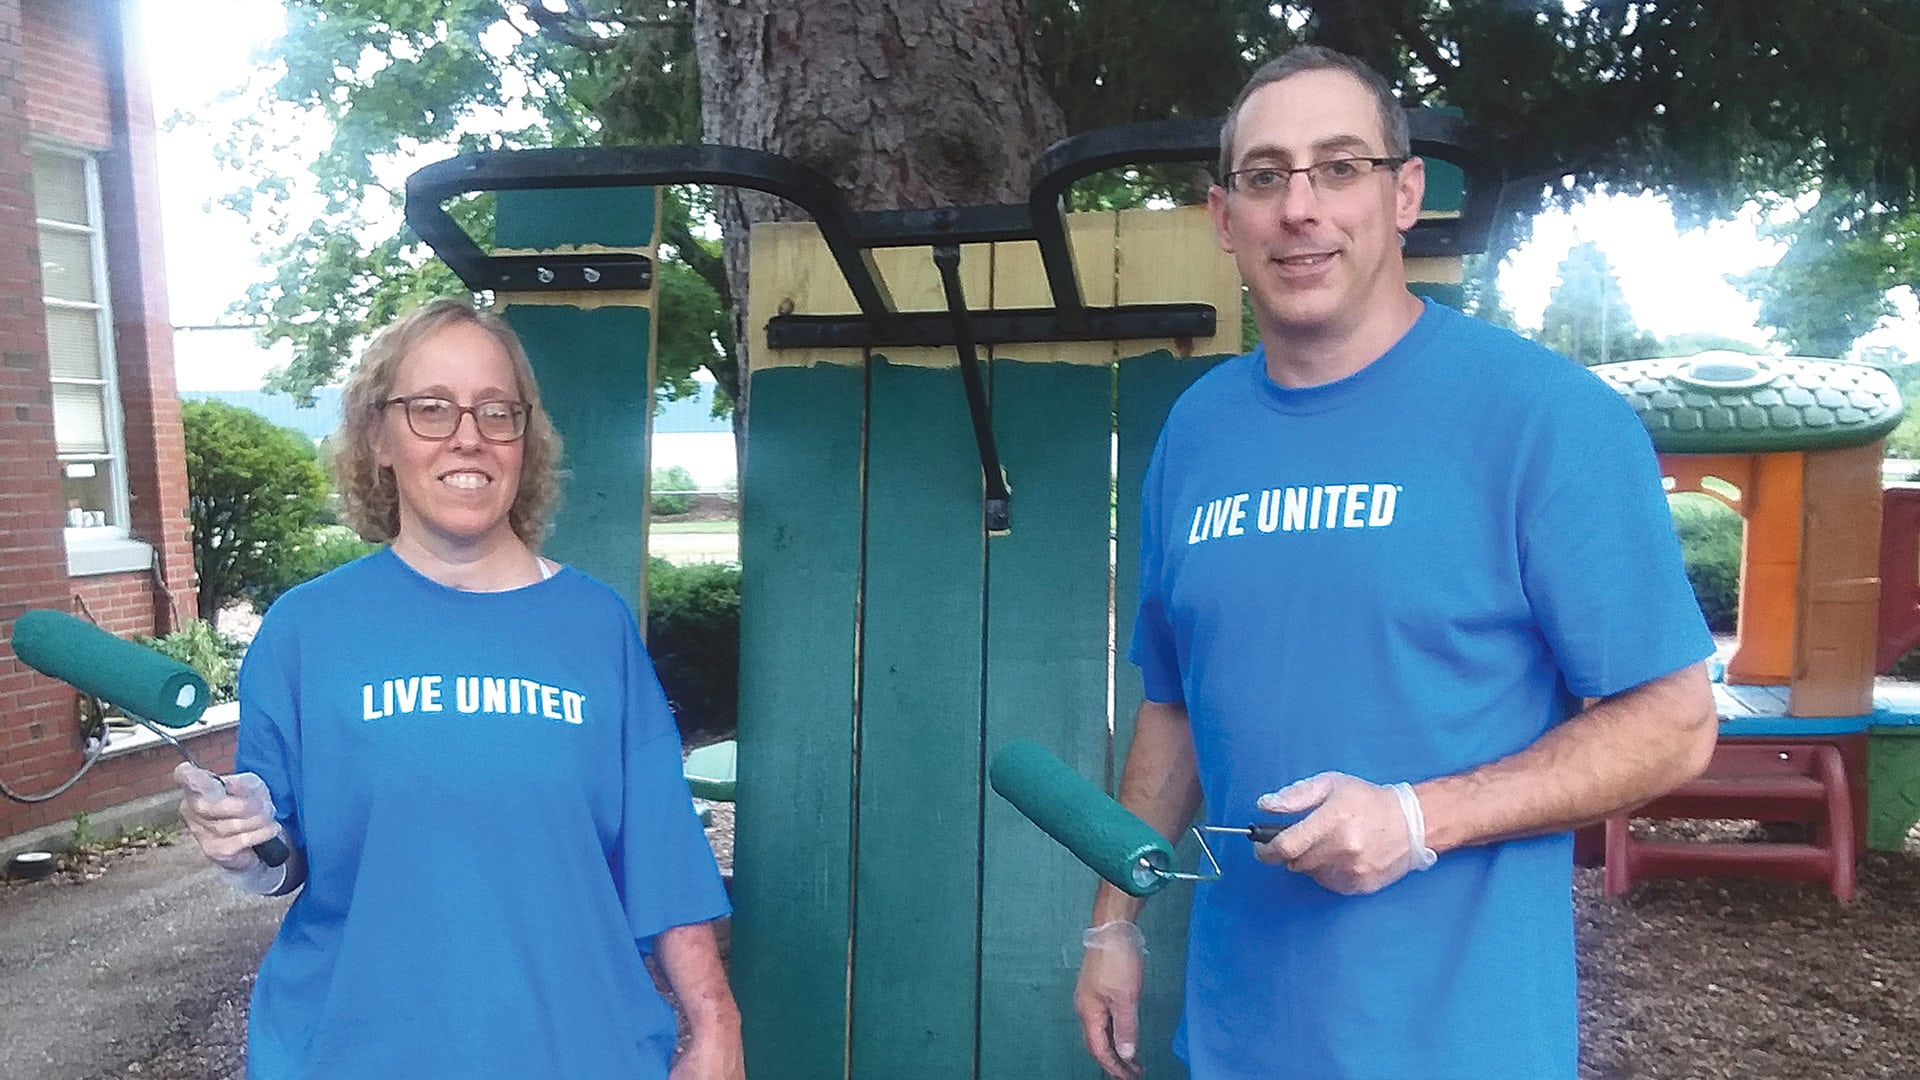 The United Way's Day of Caring brought together more than 1,000 people on Sept. 14